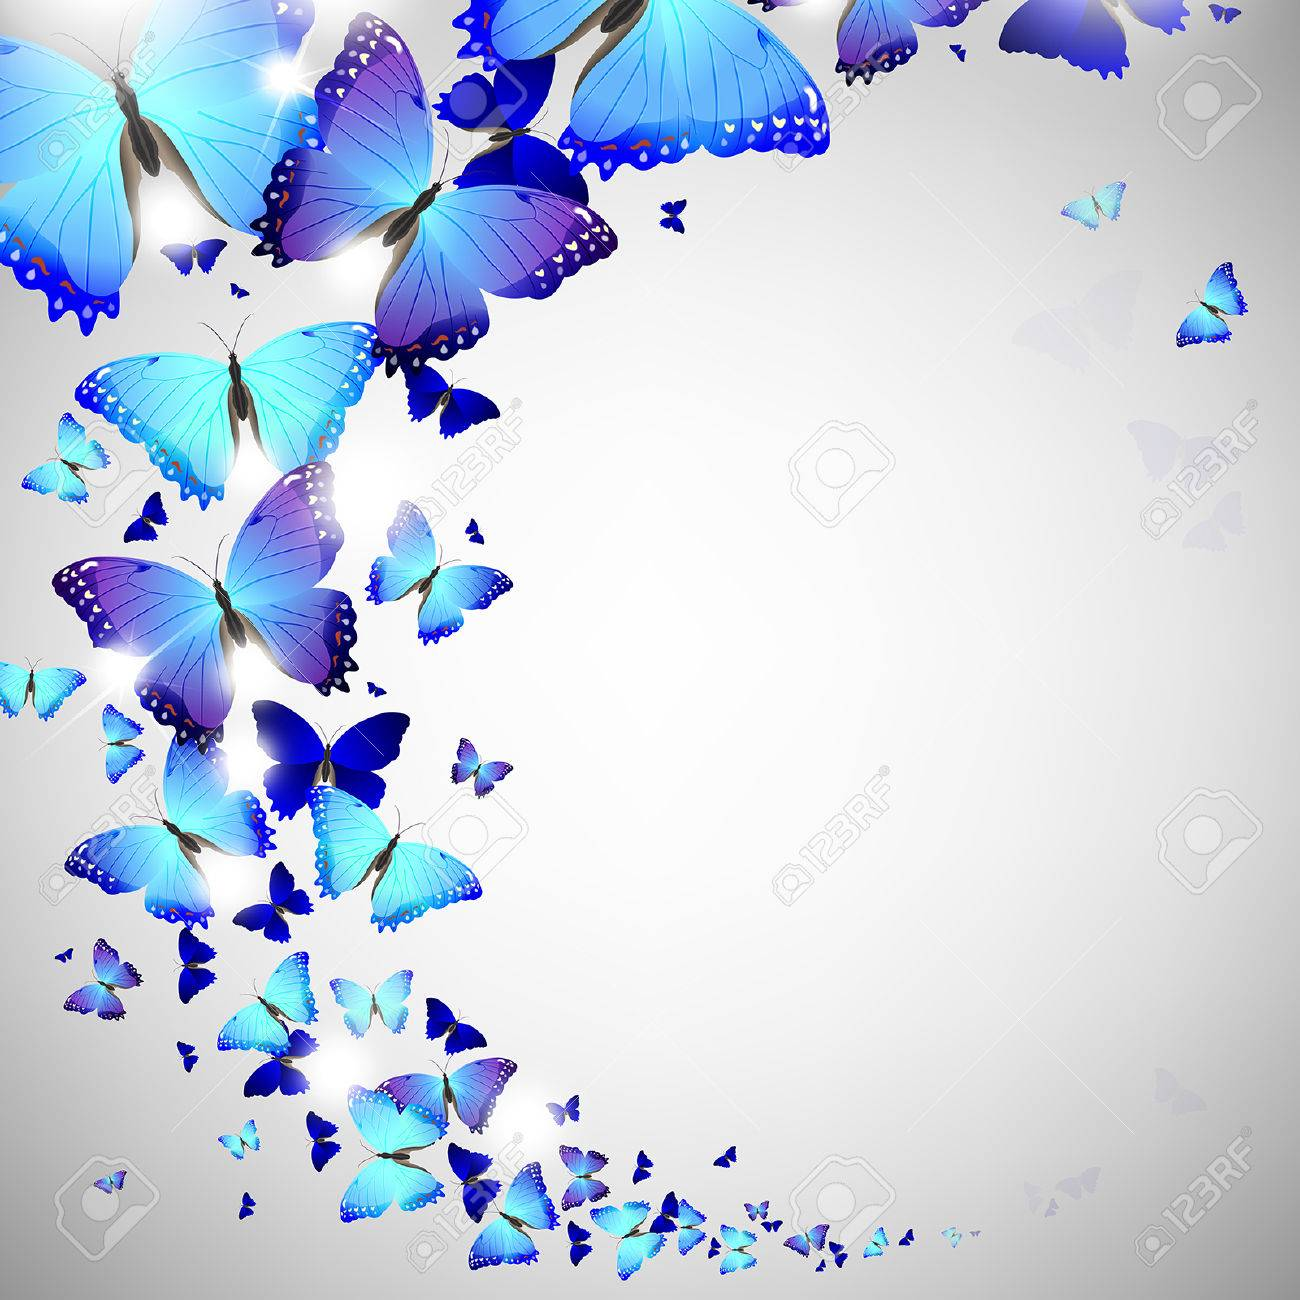 Blue Butterfly On A Light Background Royalty Free Cliparts Vectors